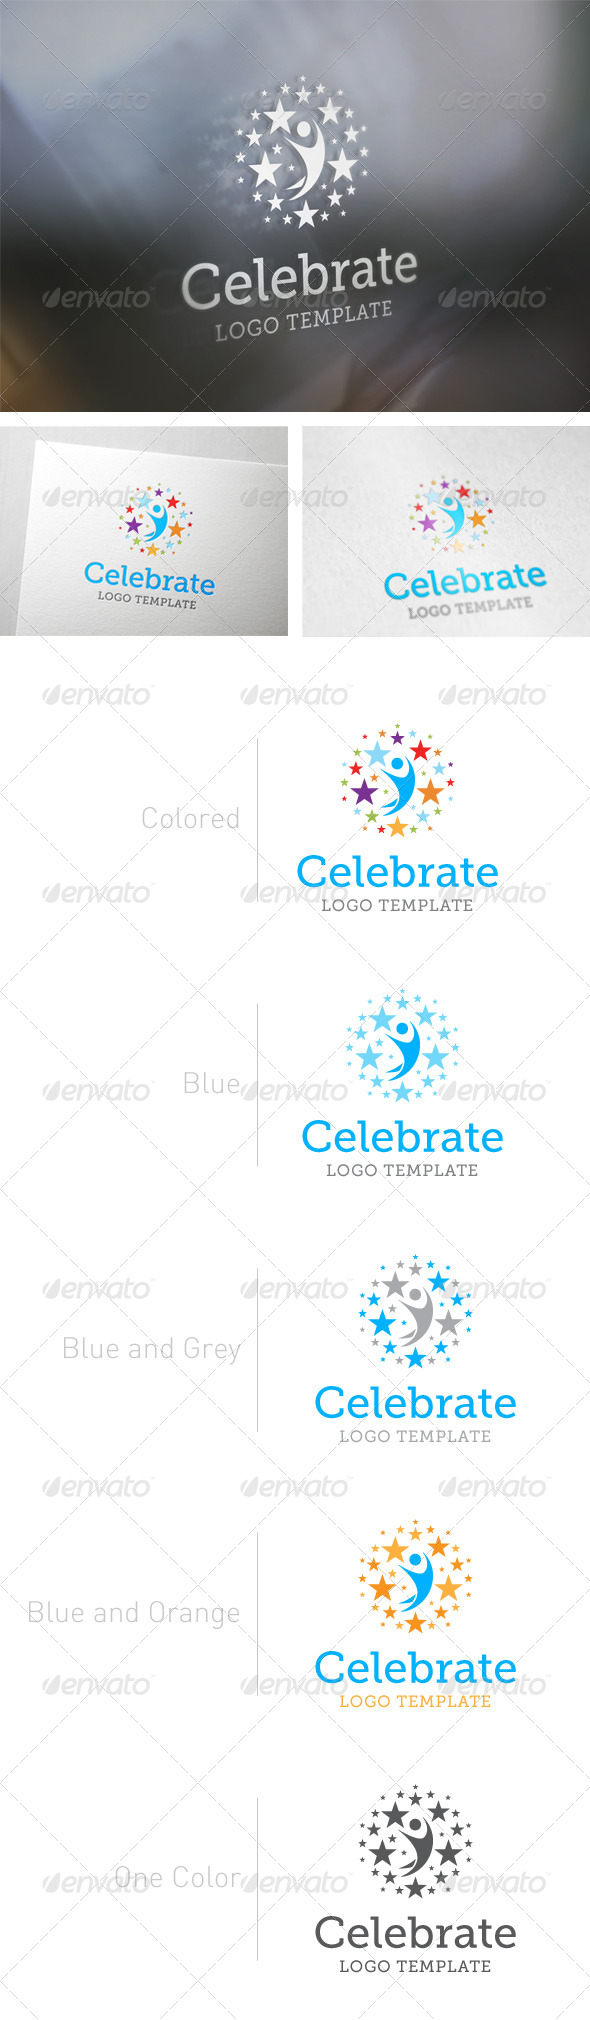 GraphicRiver Celebrate Logo Template 5895460